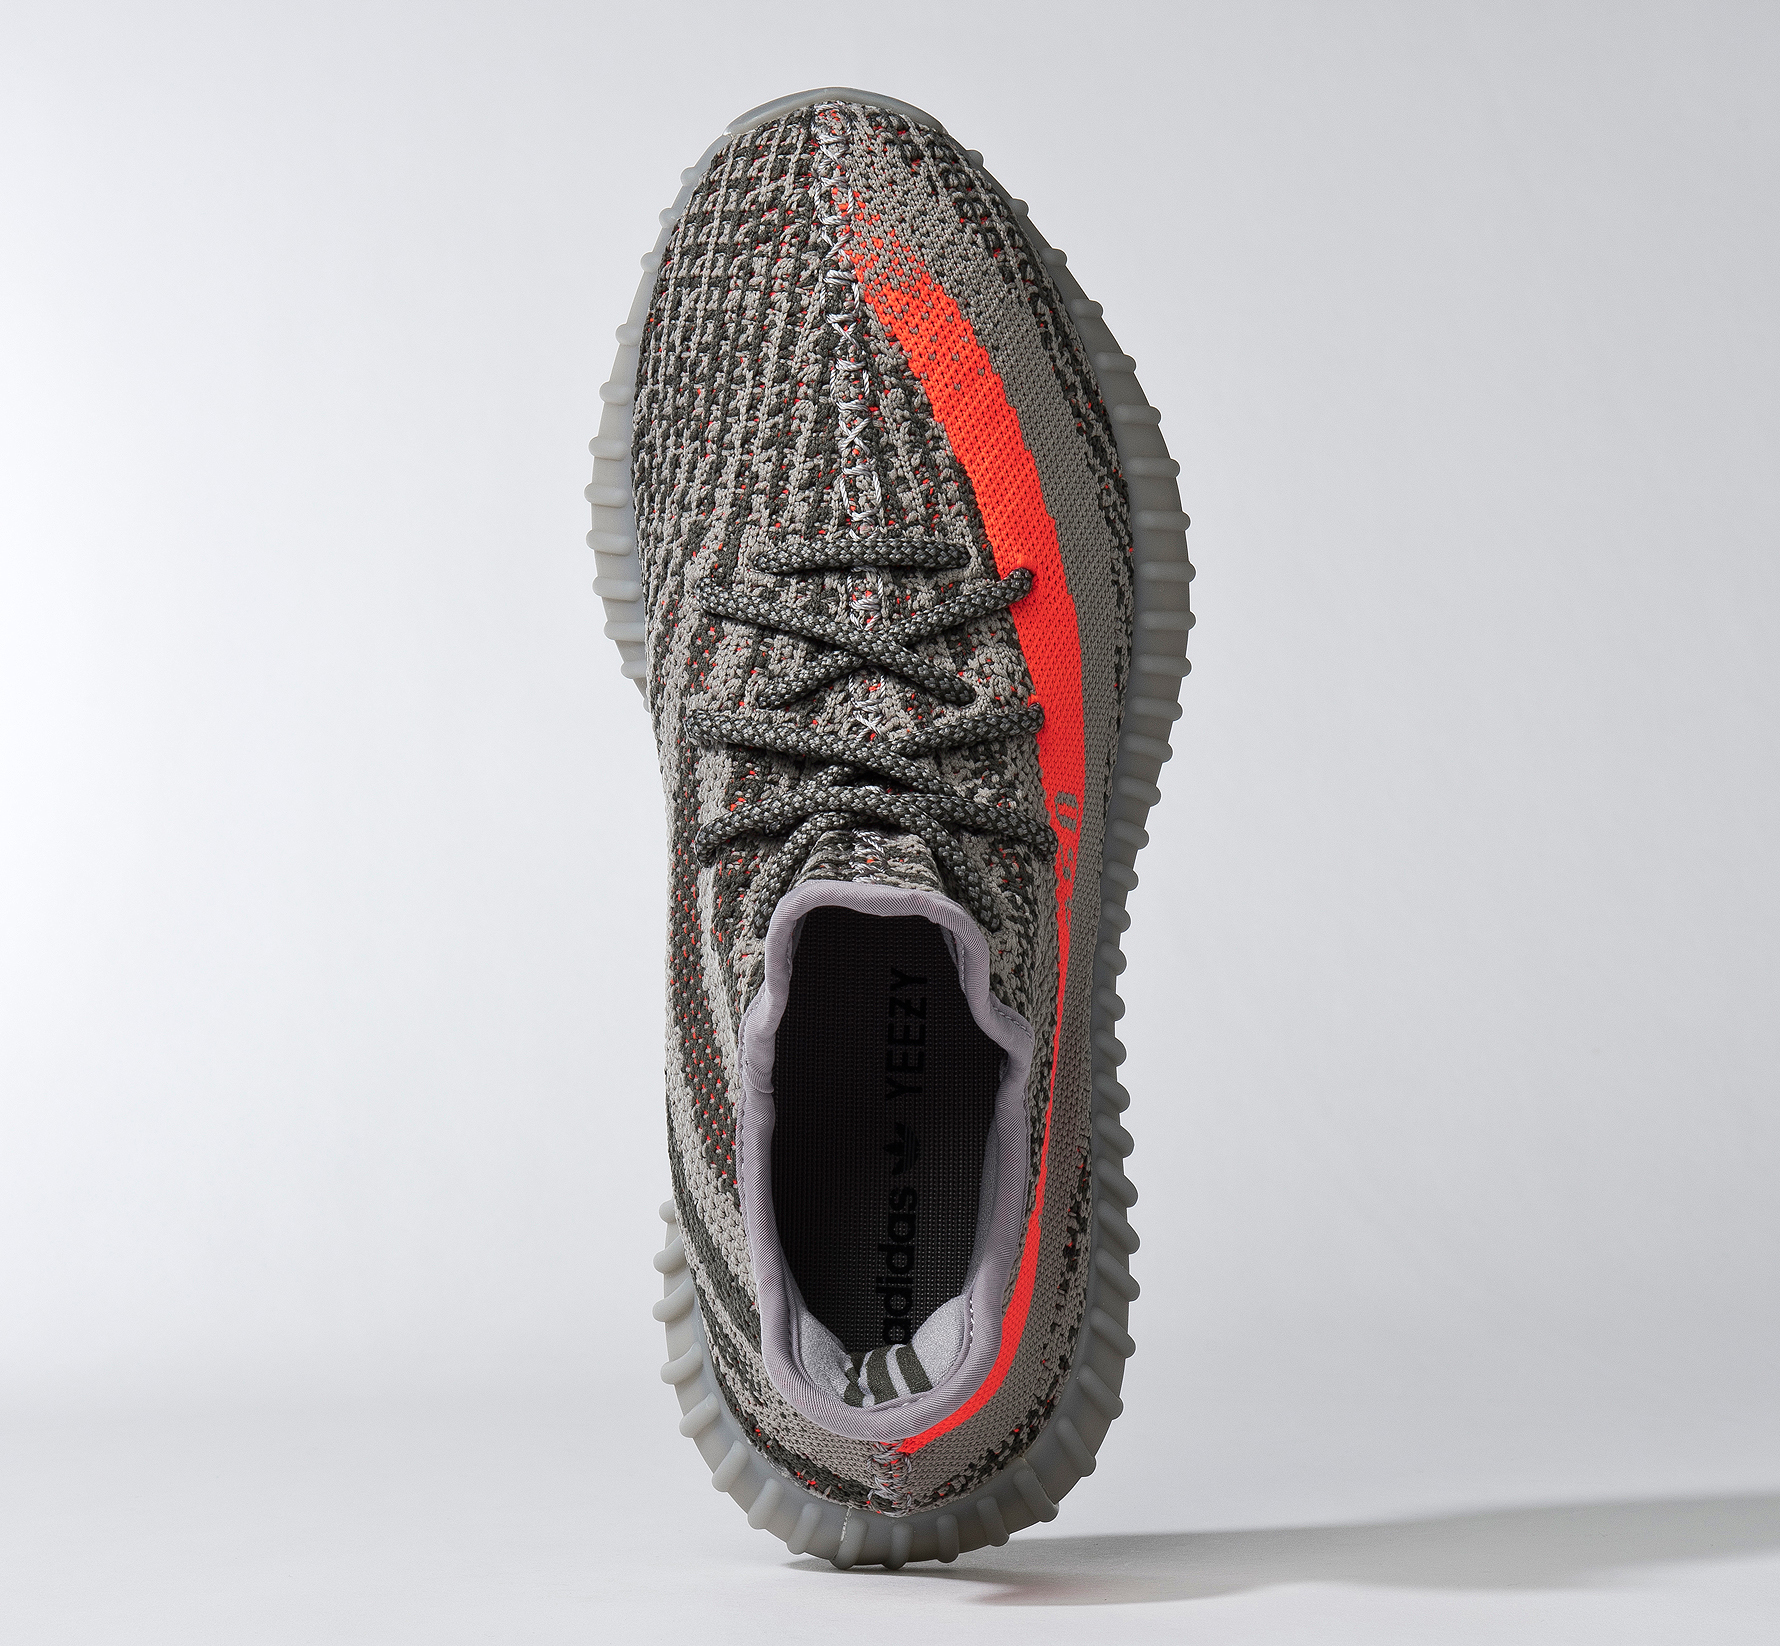 ADIDAS YEEZY BOOST 350 V 2 BY 1605 IN HAND SPLY Cheap Sale